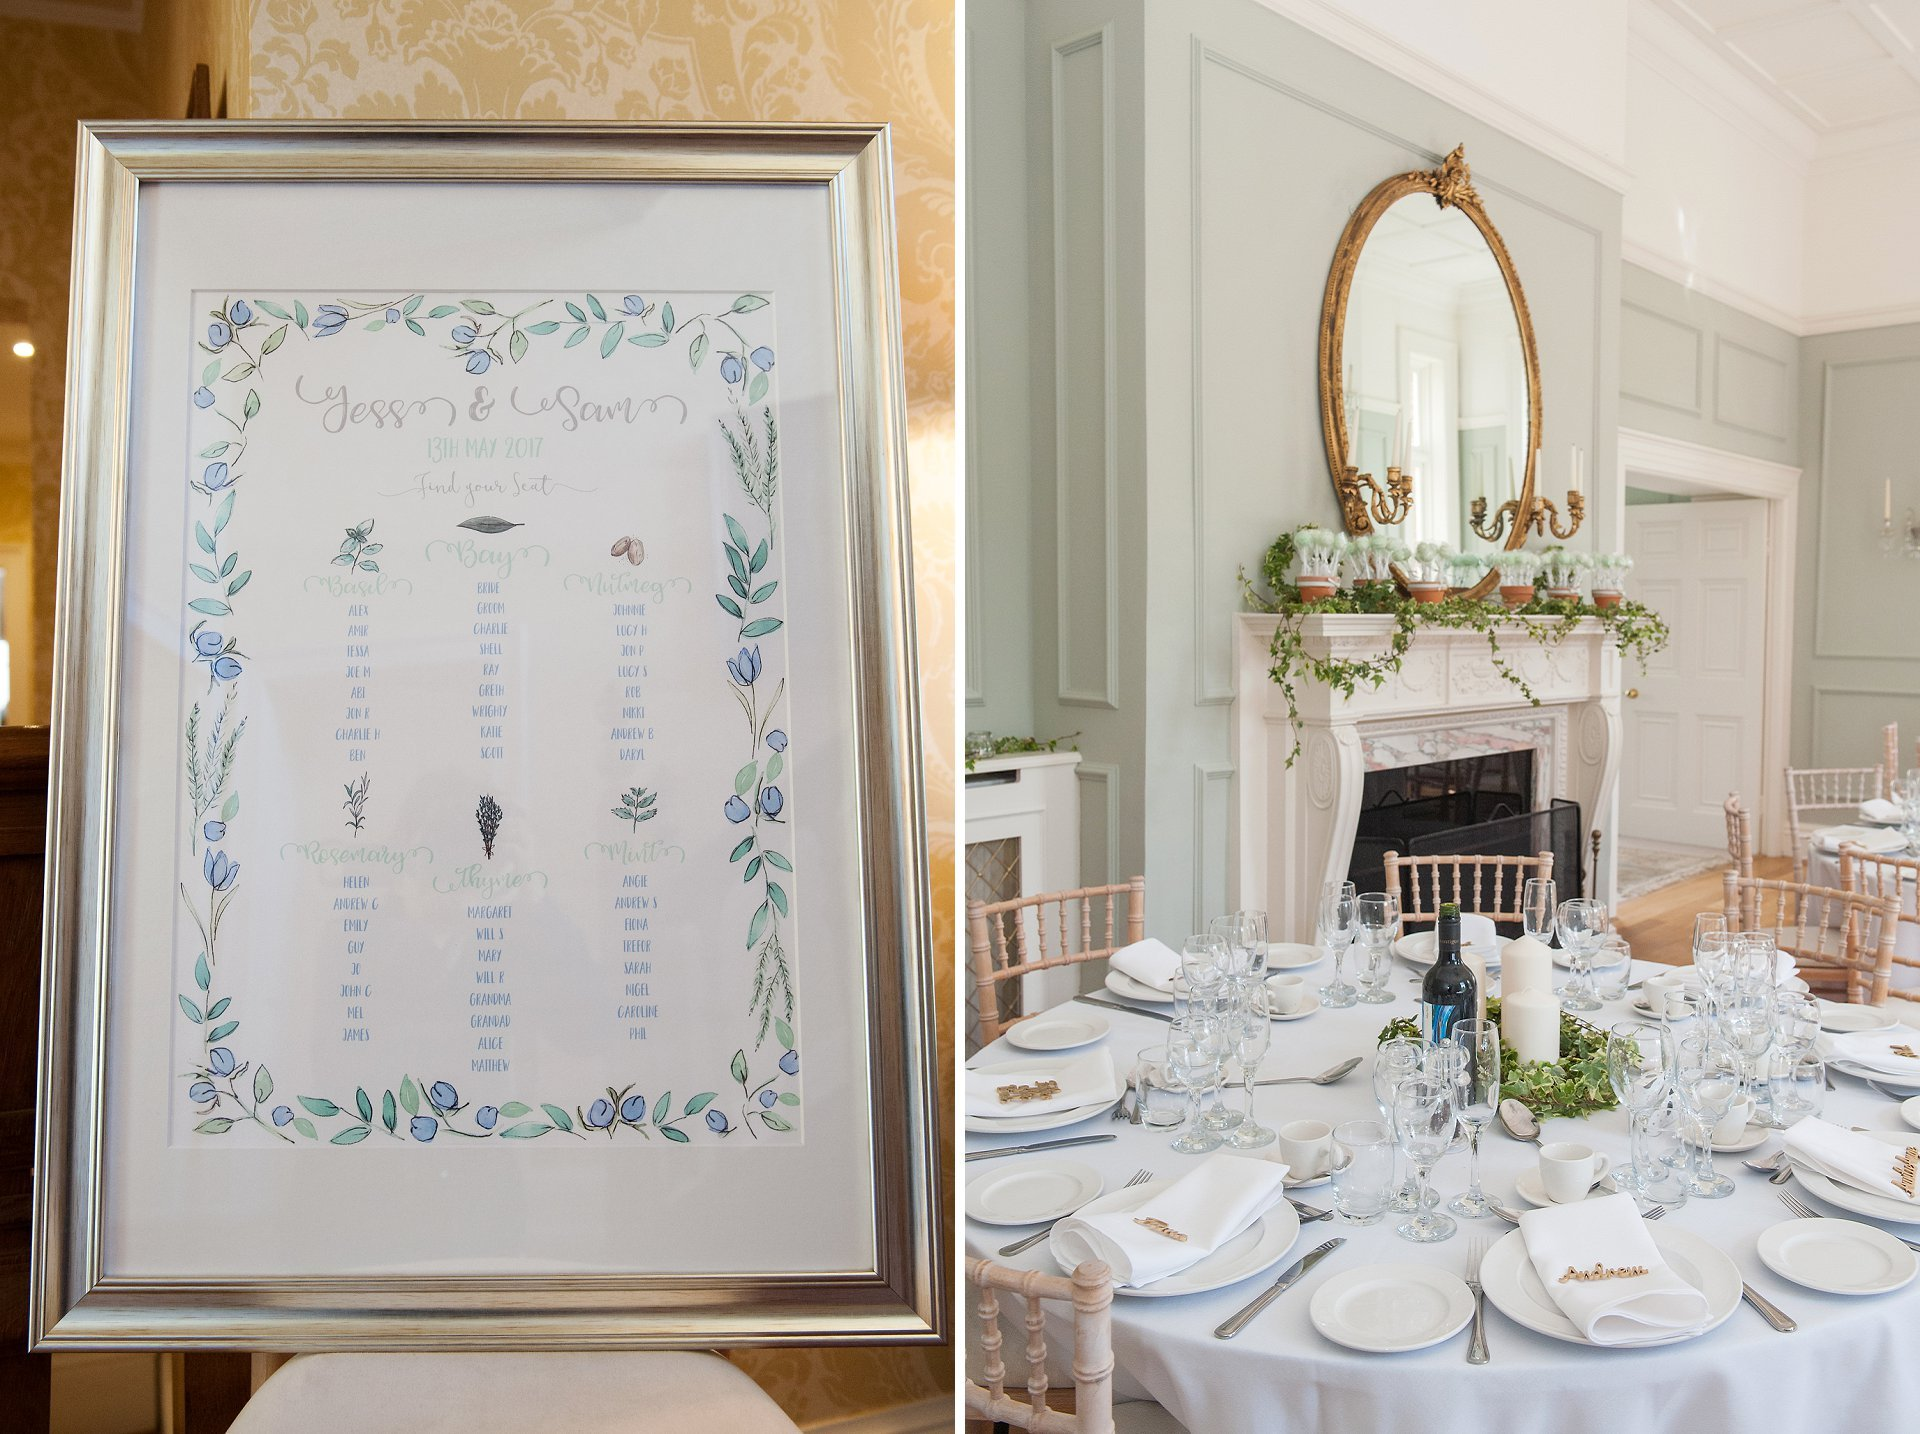 Pale blue and pale green table seating plan for the pale green dining room at Kent wedding venue, Starborough Manor